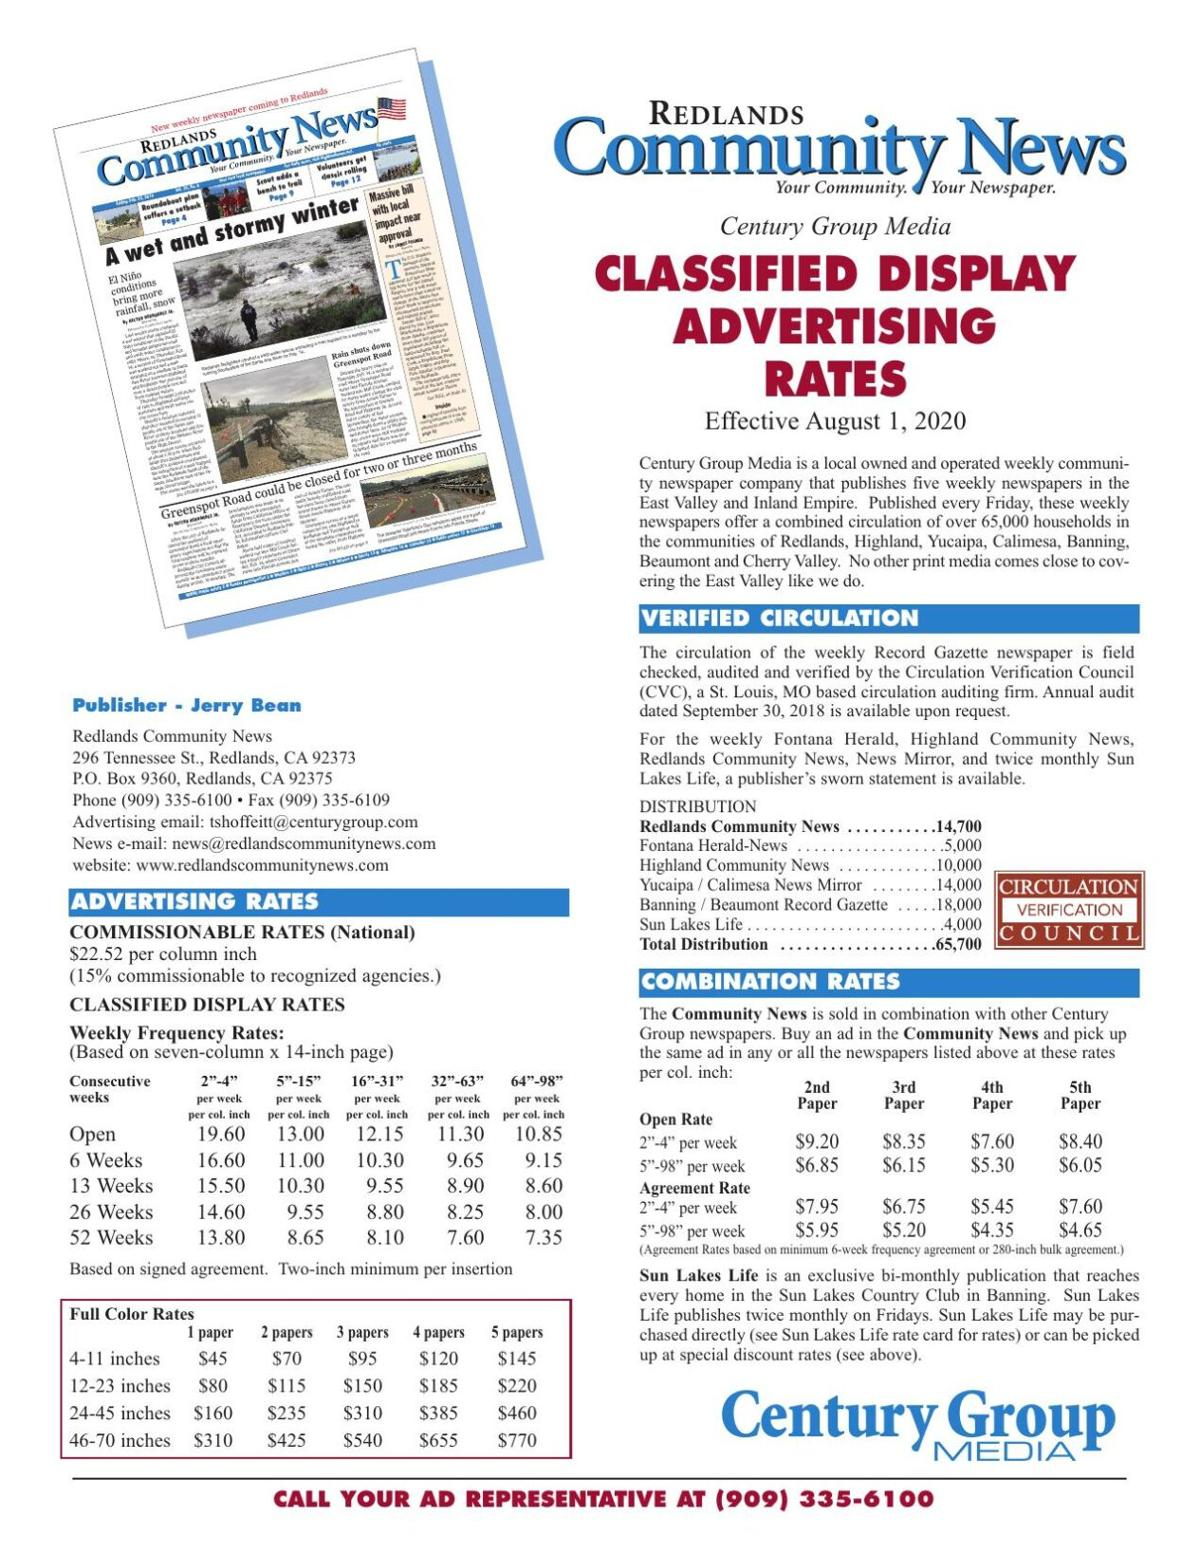 Redlands Community News - Classified Display Rates